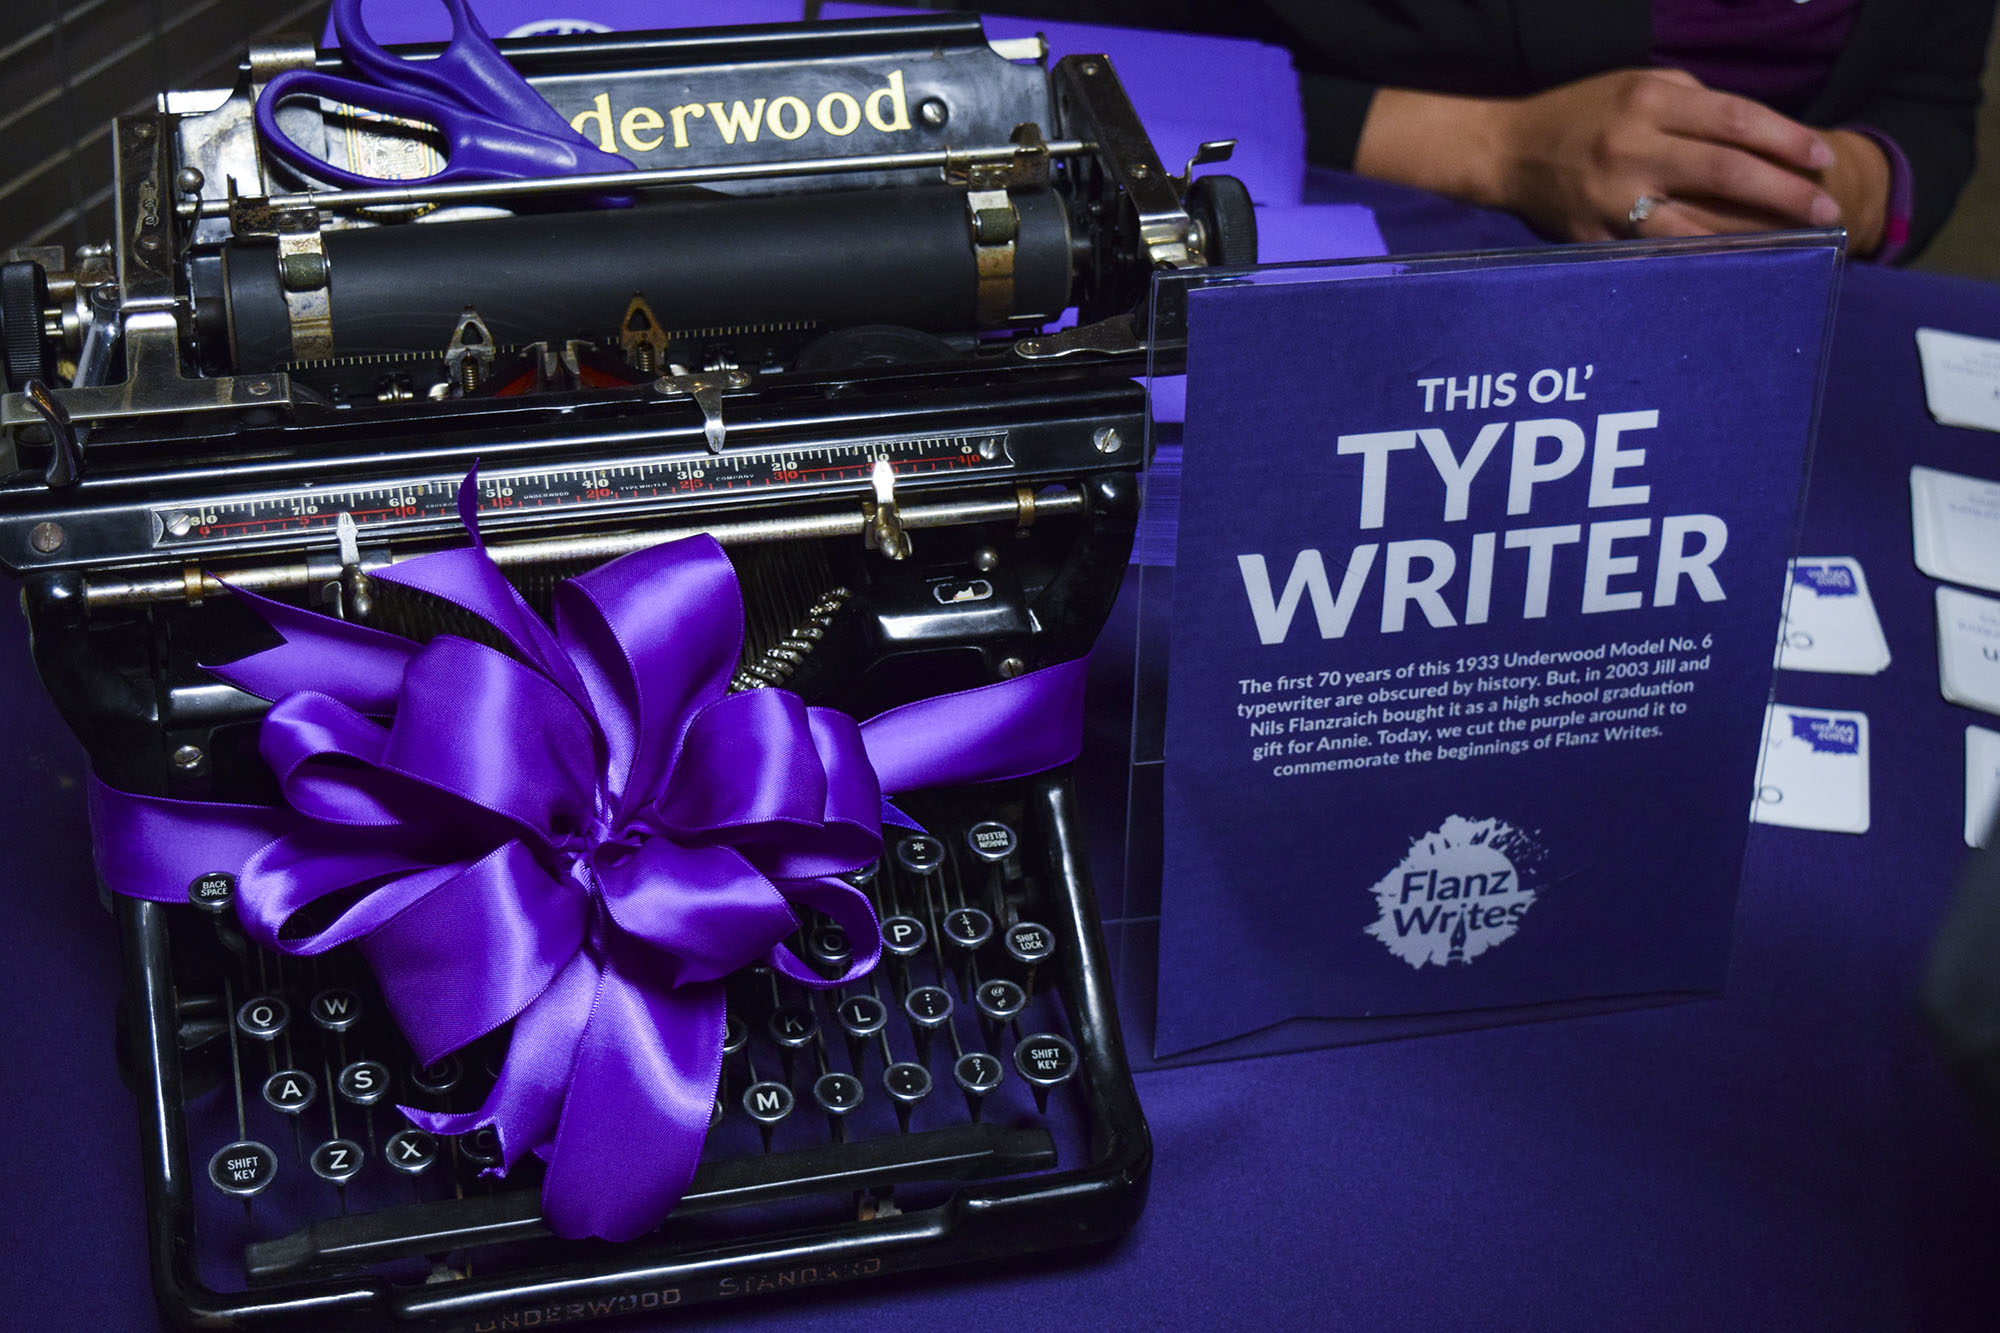 Flanz Writes Launch Party Typewriter